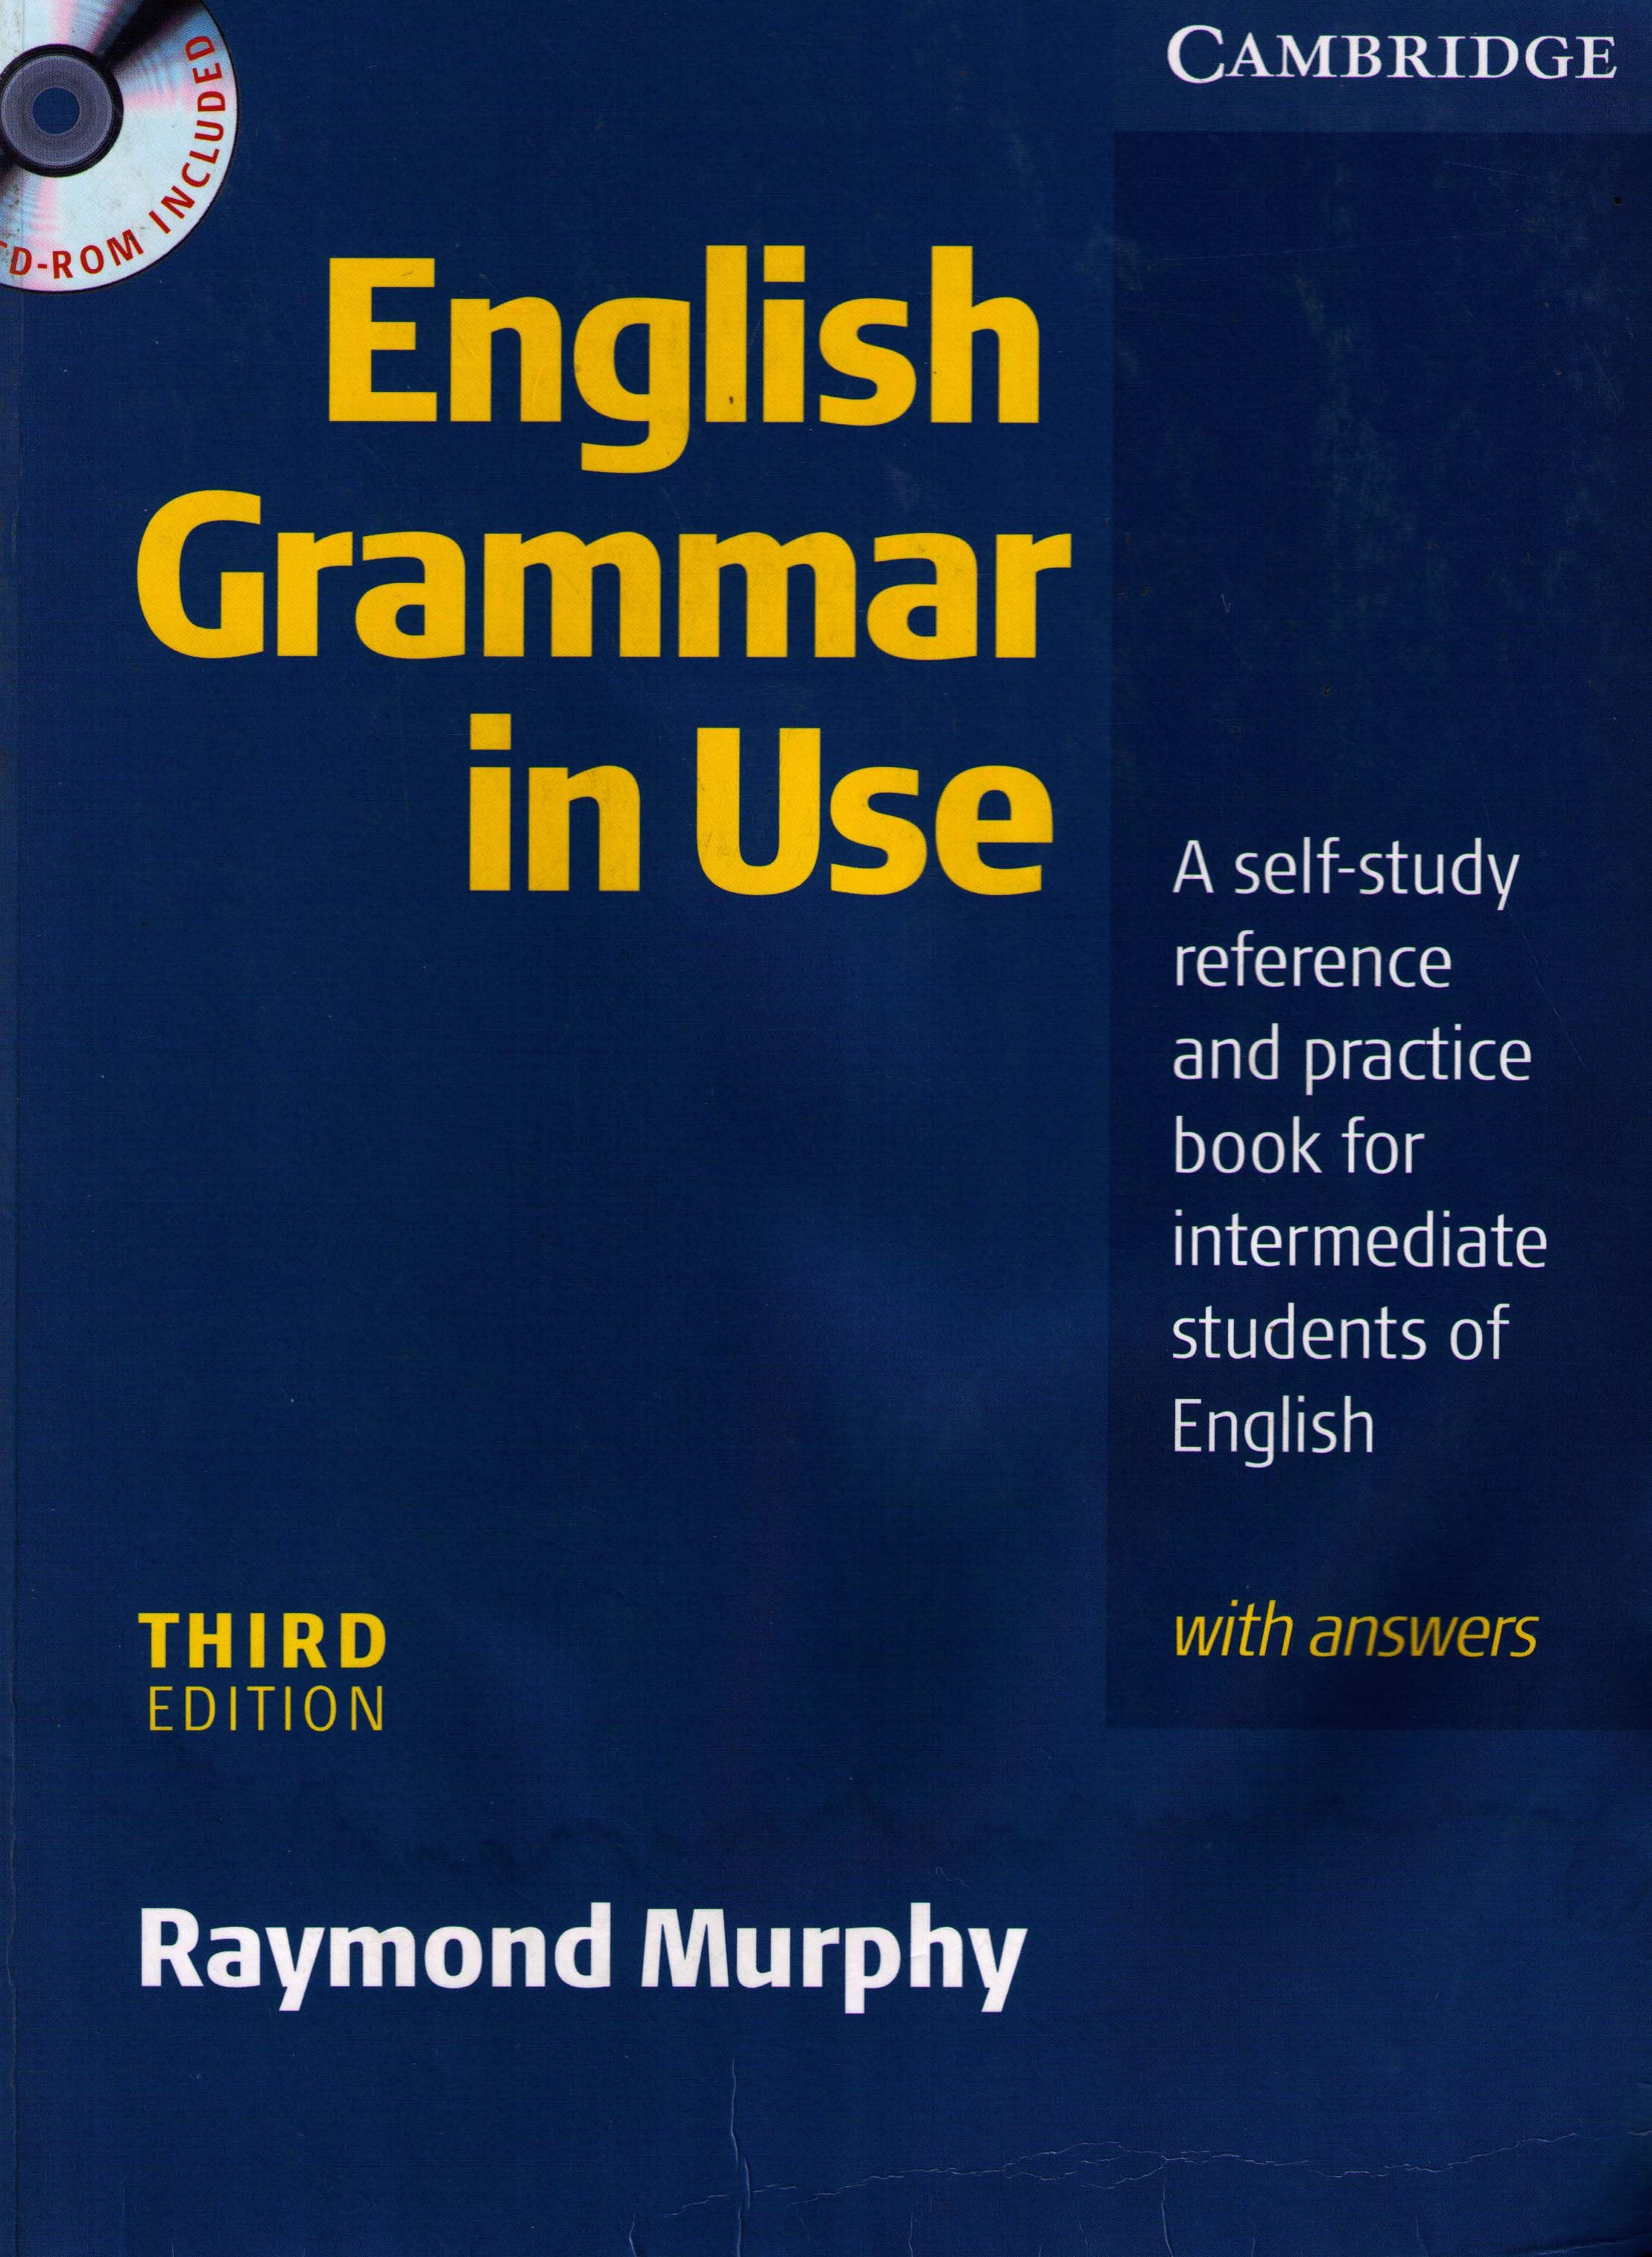 grammar help online Master english grammar with the helpful lessons in this engaging review course our fun, short video and text lessons are accompanied by.